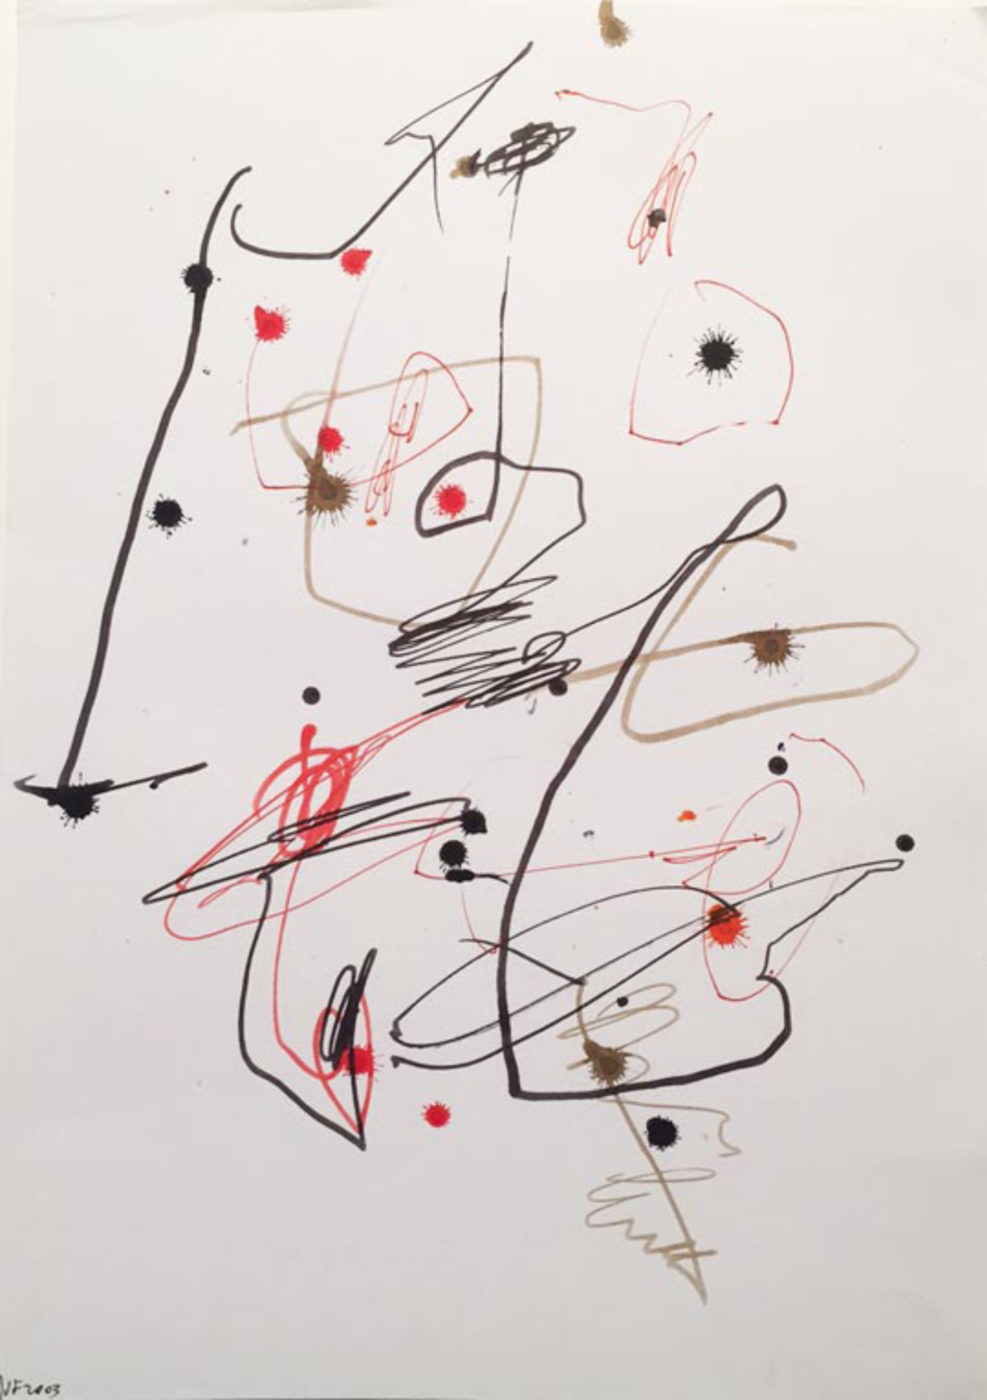 MARC FELD 2003 LITTLE SONG FOR MAURICIO KAGEL 13 Stylo feutre sur papier 21x29, 7 cm